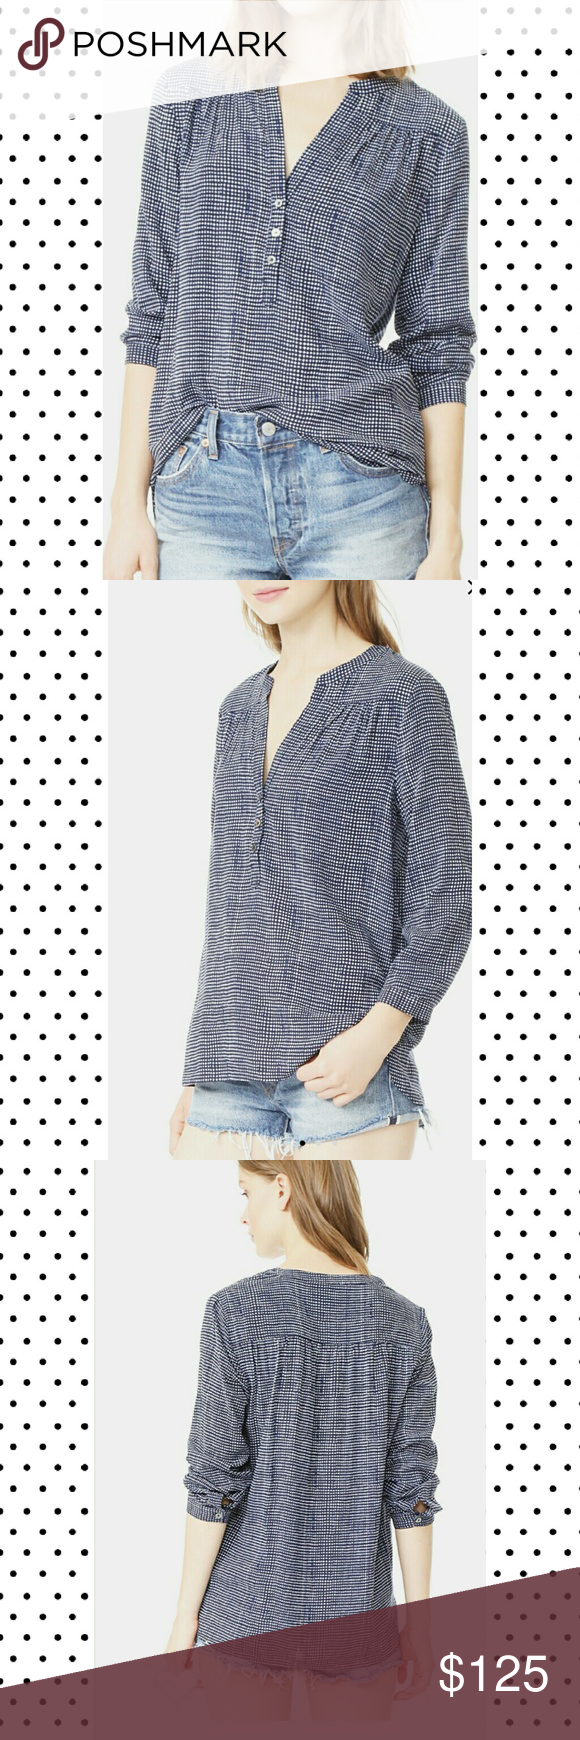 16196eab4947b Soft joie blue popover patterned blouse NWT. Top named rosalynn. Great for  weekend or the office. Soft Joie Tops Blouses